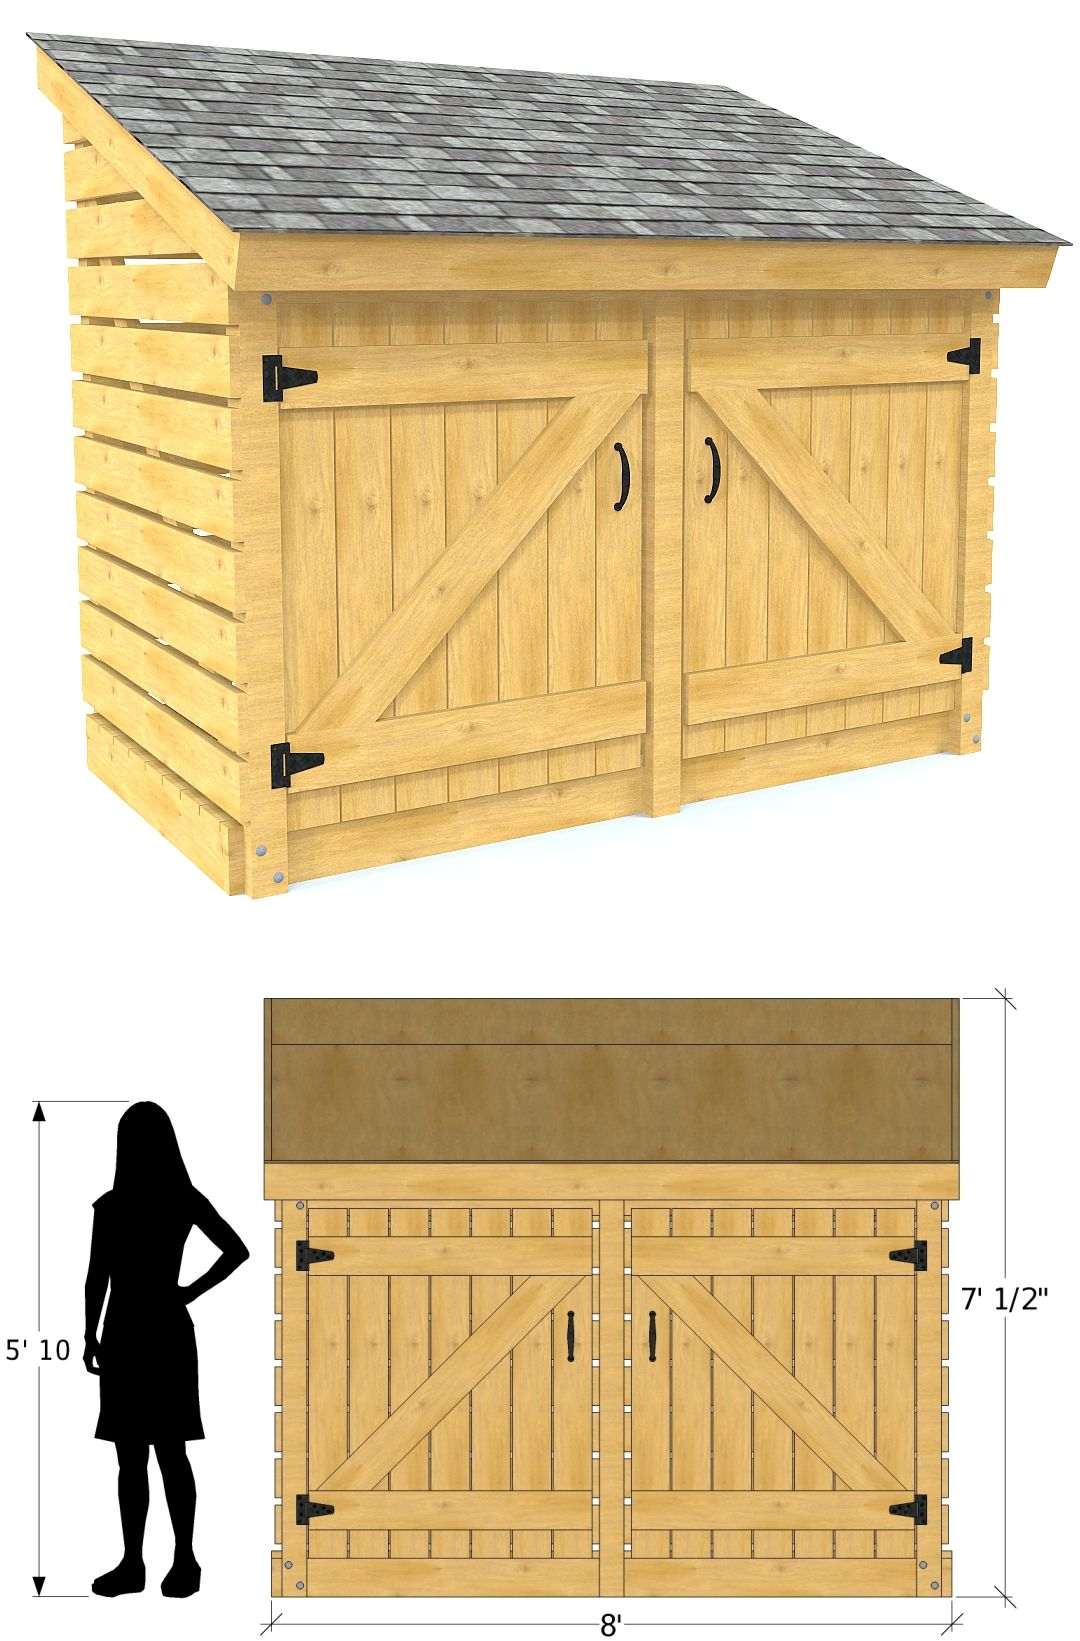 4x8 Free Small Shed Plan In 2019